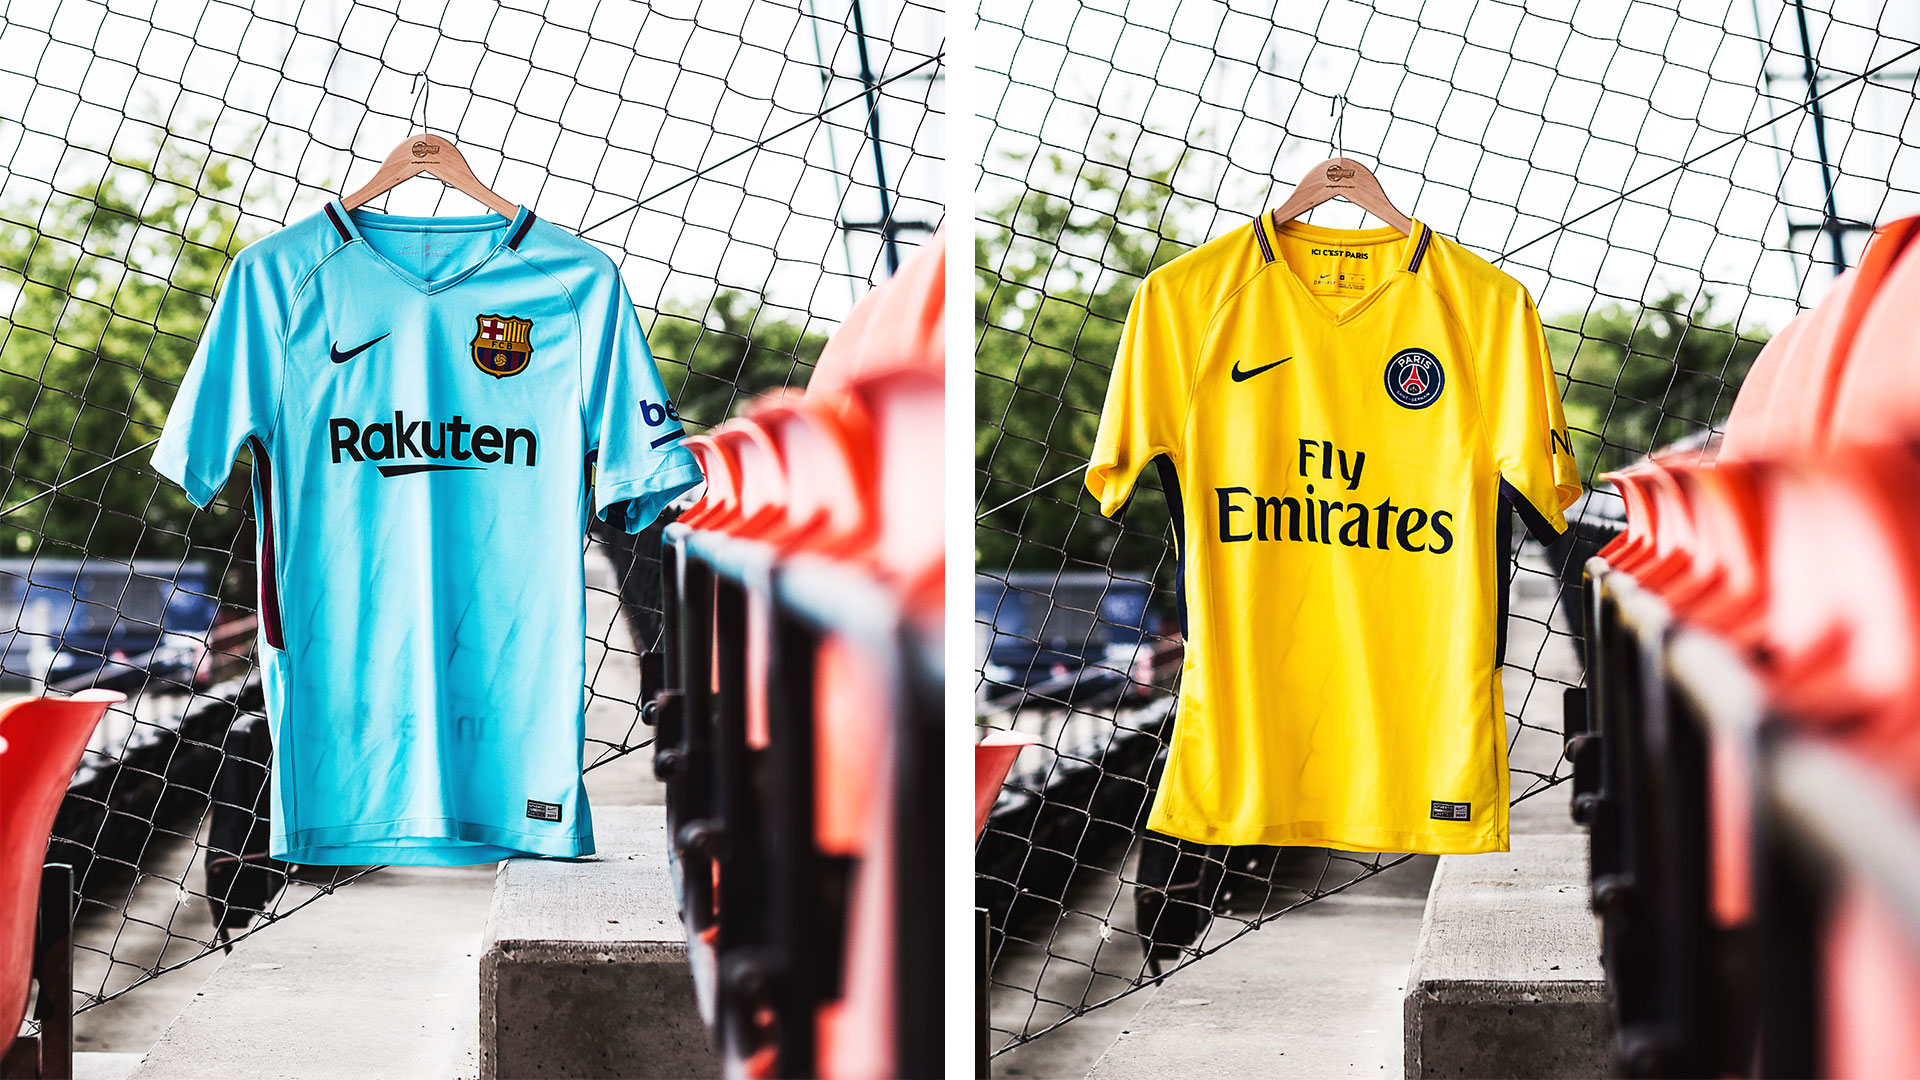 nike makes barca and psg ready for the away games in a colourful launch. 29.06.2017